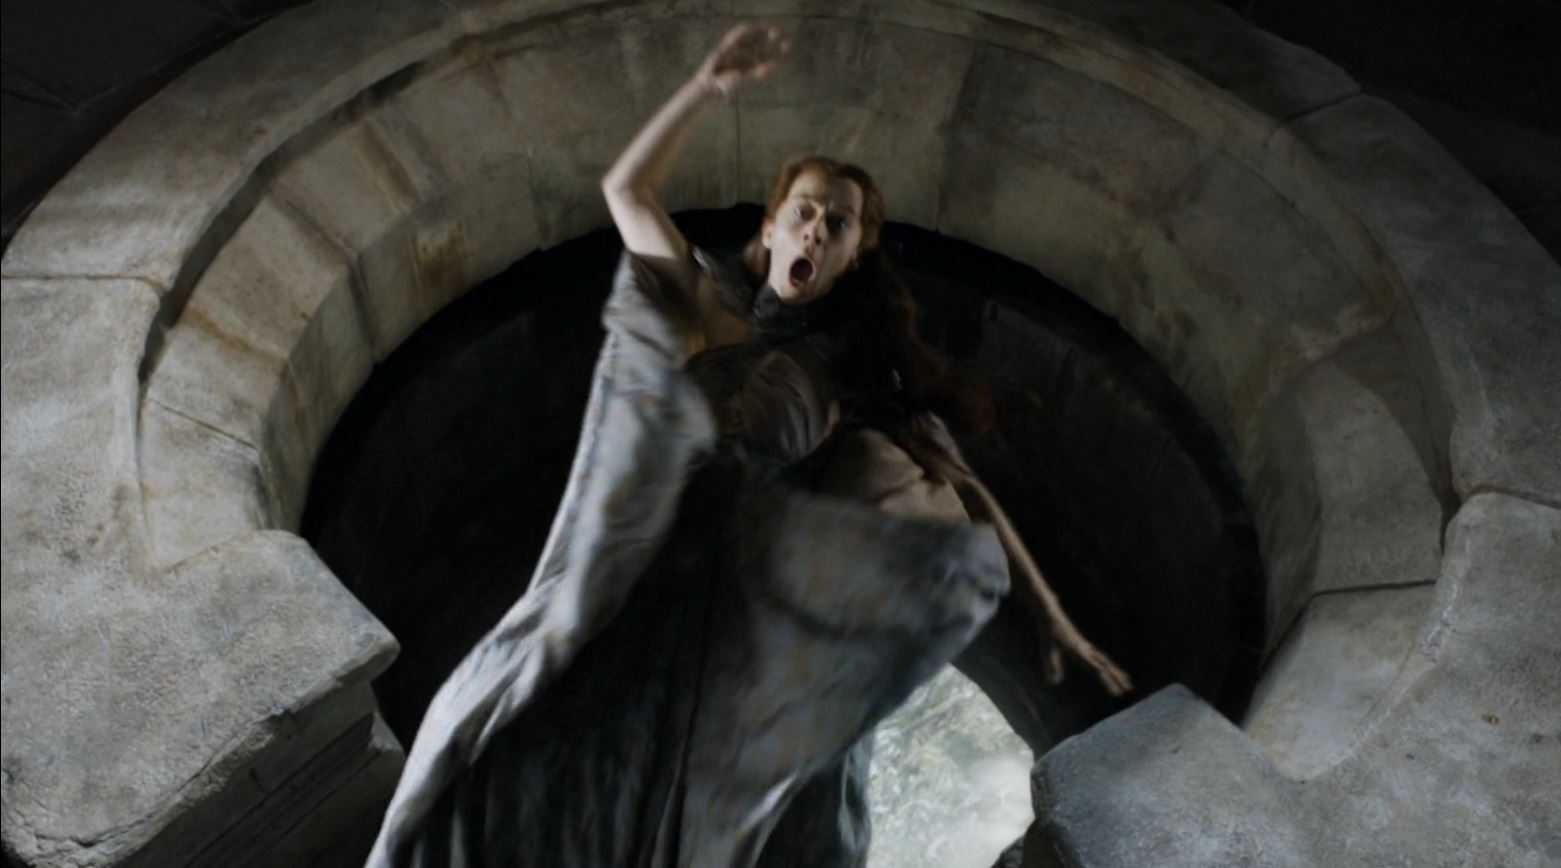 Game-Of-Thrones-S4Ep7-Mockingbird-Review-Kate-Dickie-as-Lysa-Arryn-thrown-out-of-the- moon-door.jpg & Image - Game-Of-Thrones-S4Ep7-Mockingbird-Review-Kate-Dickie-as-Lysa ...